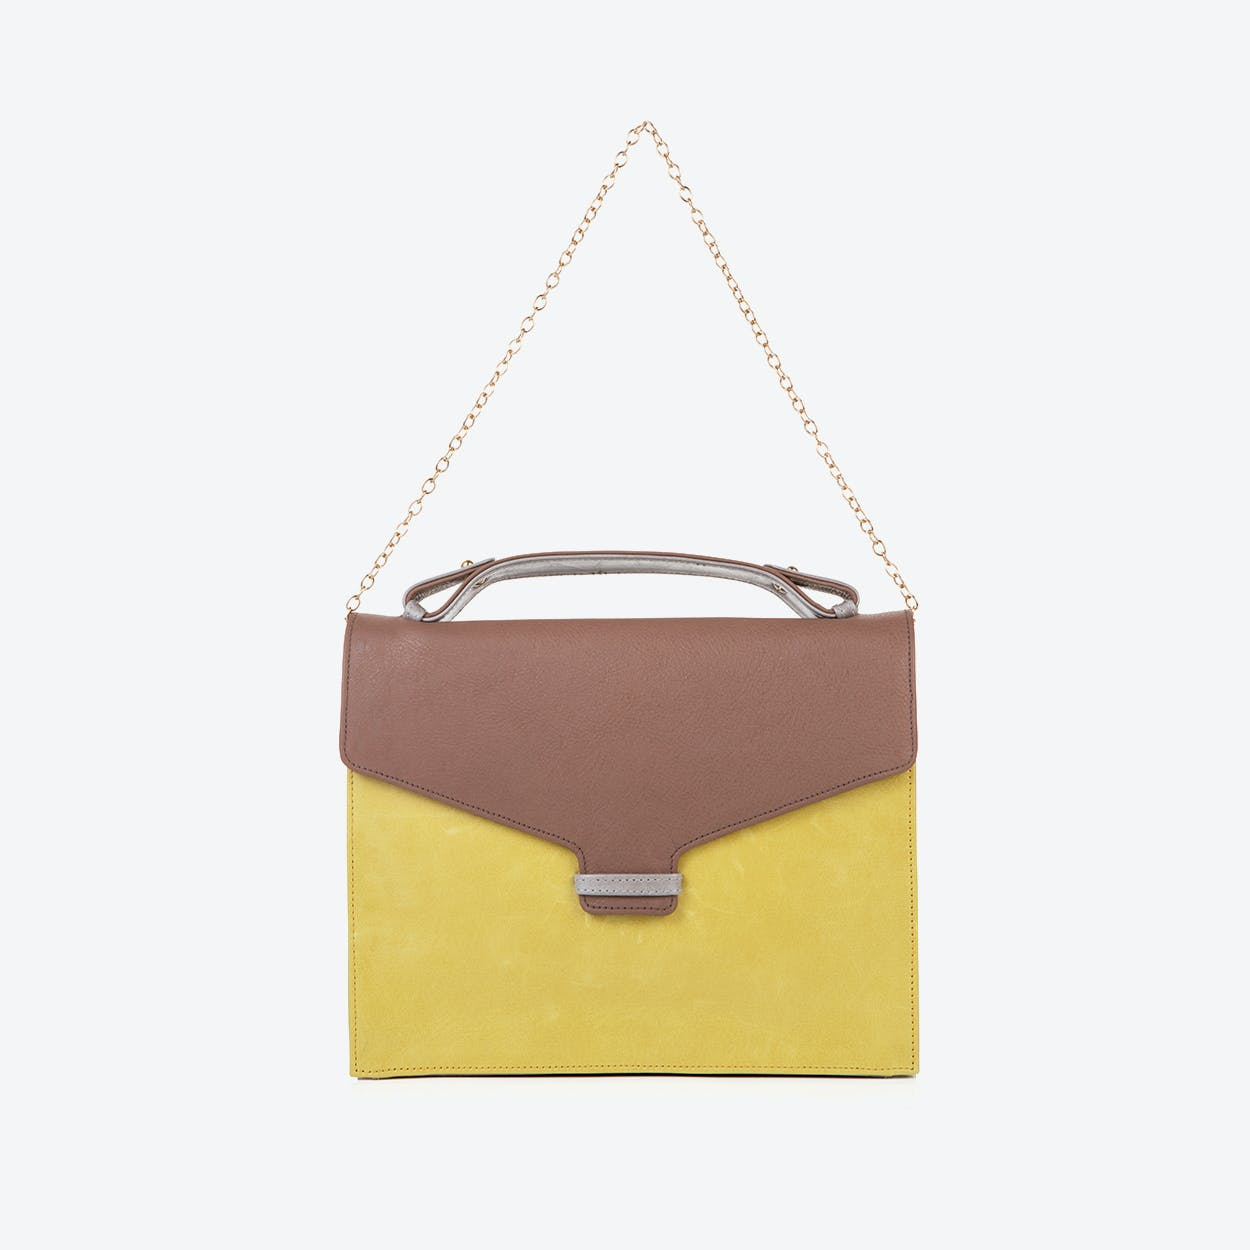 Fitzrovia Clutch in Taupe & Lemongrass